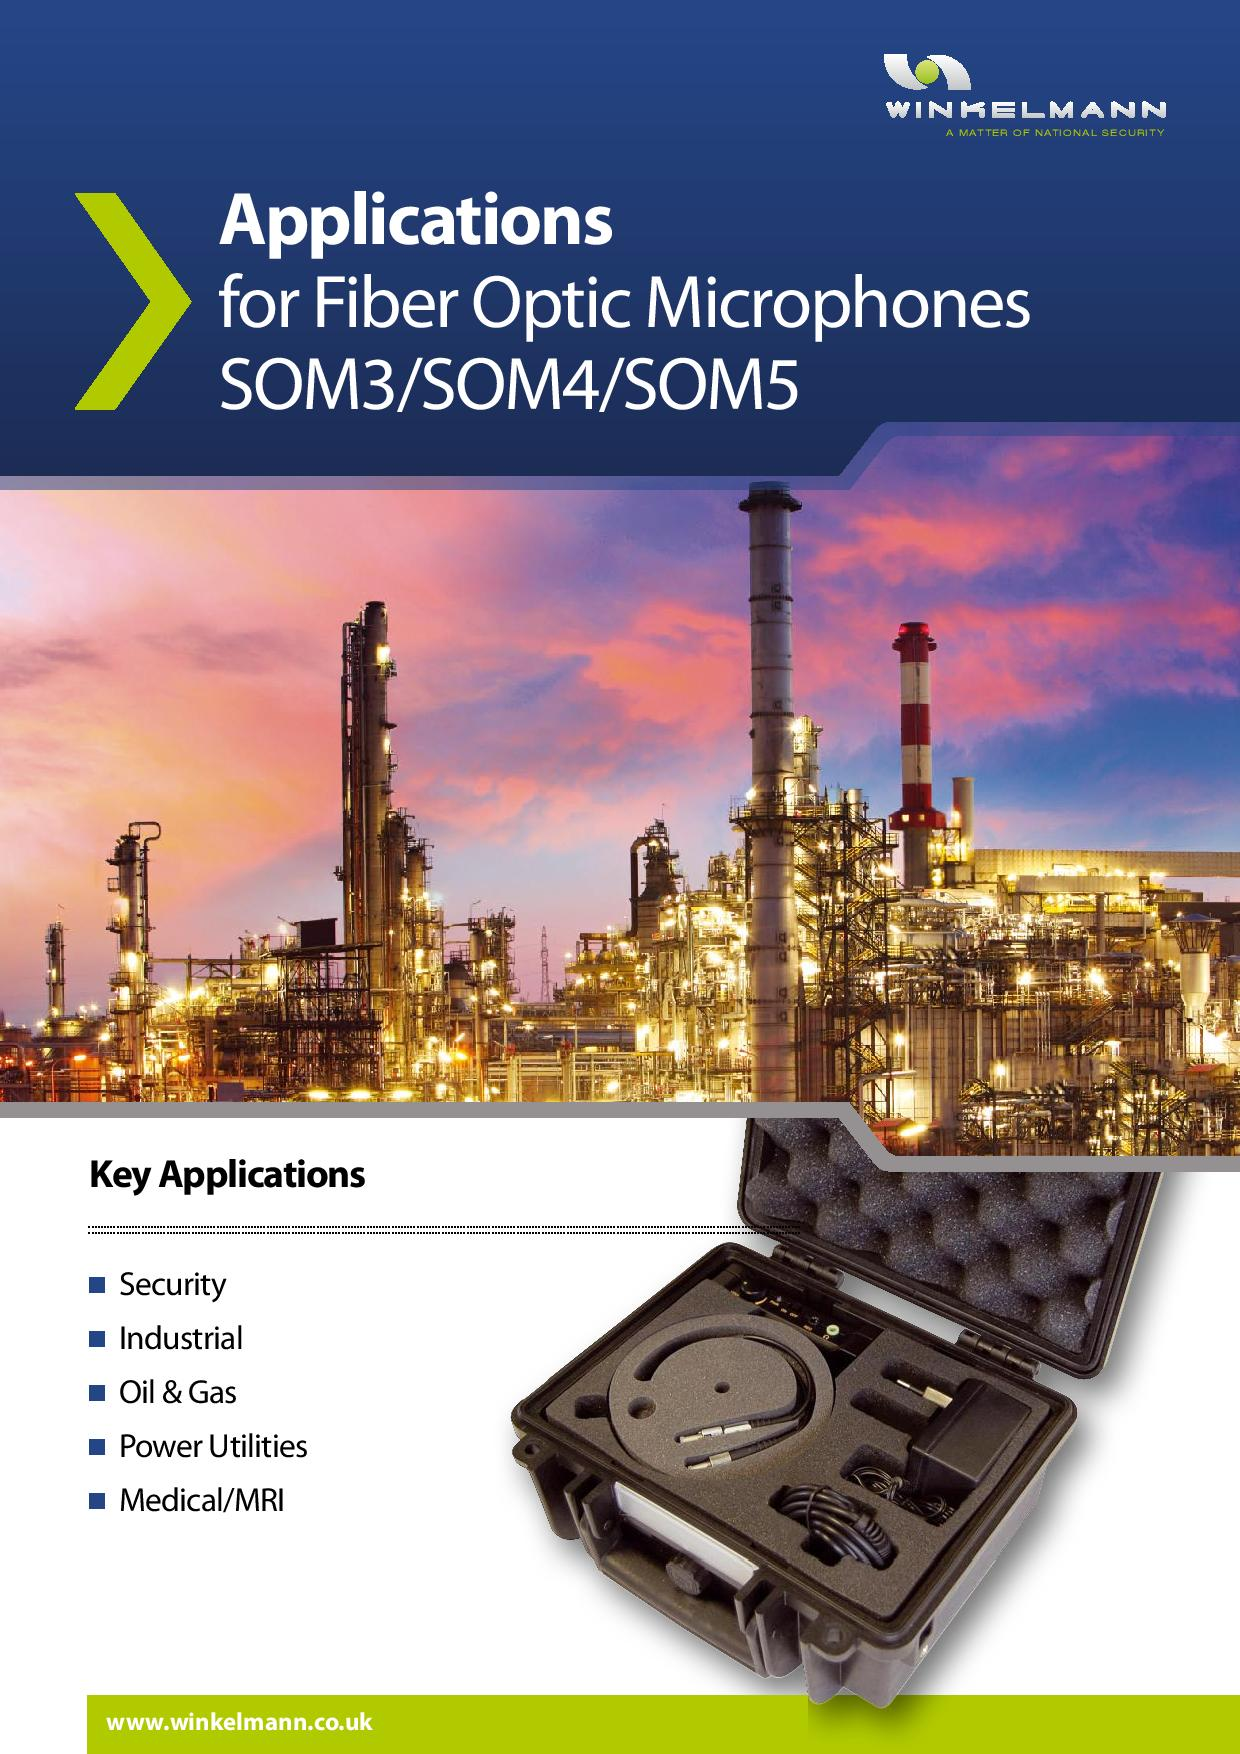 Applications for Fiber Optic Microphones SOM3/SOM4/SOM5